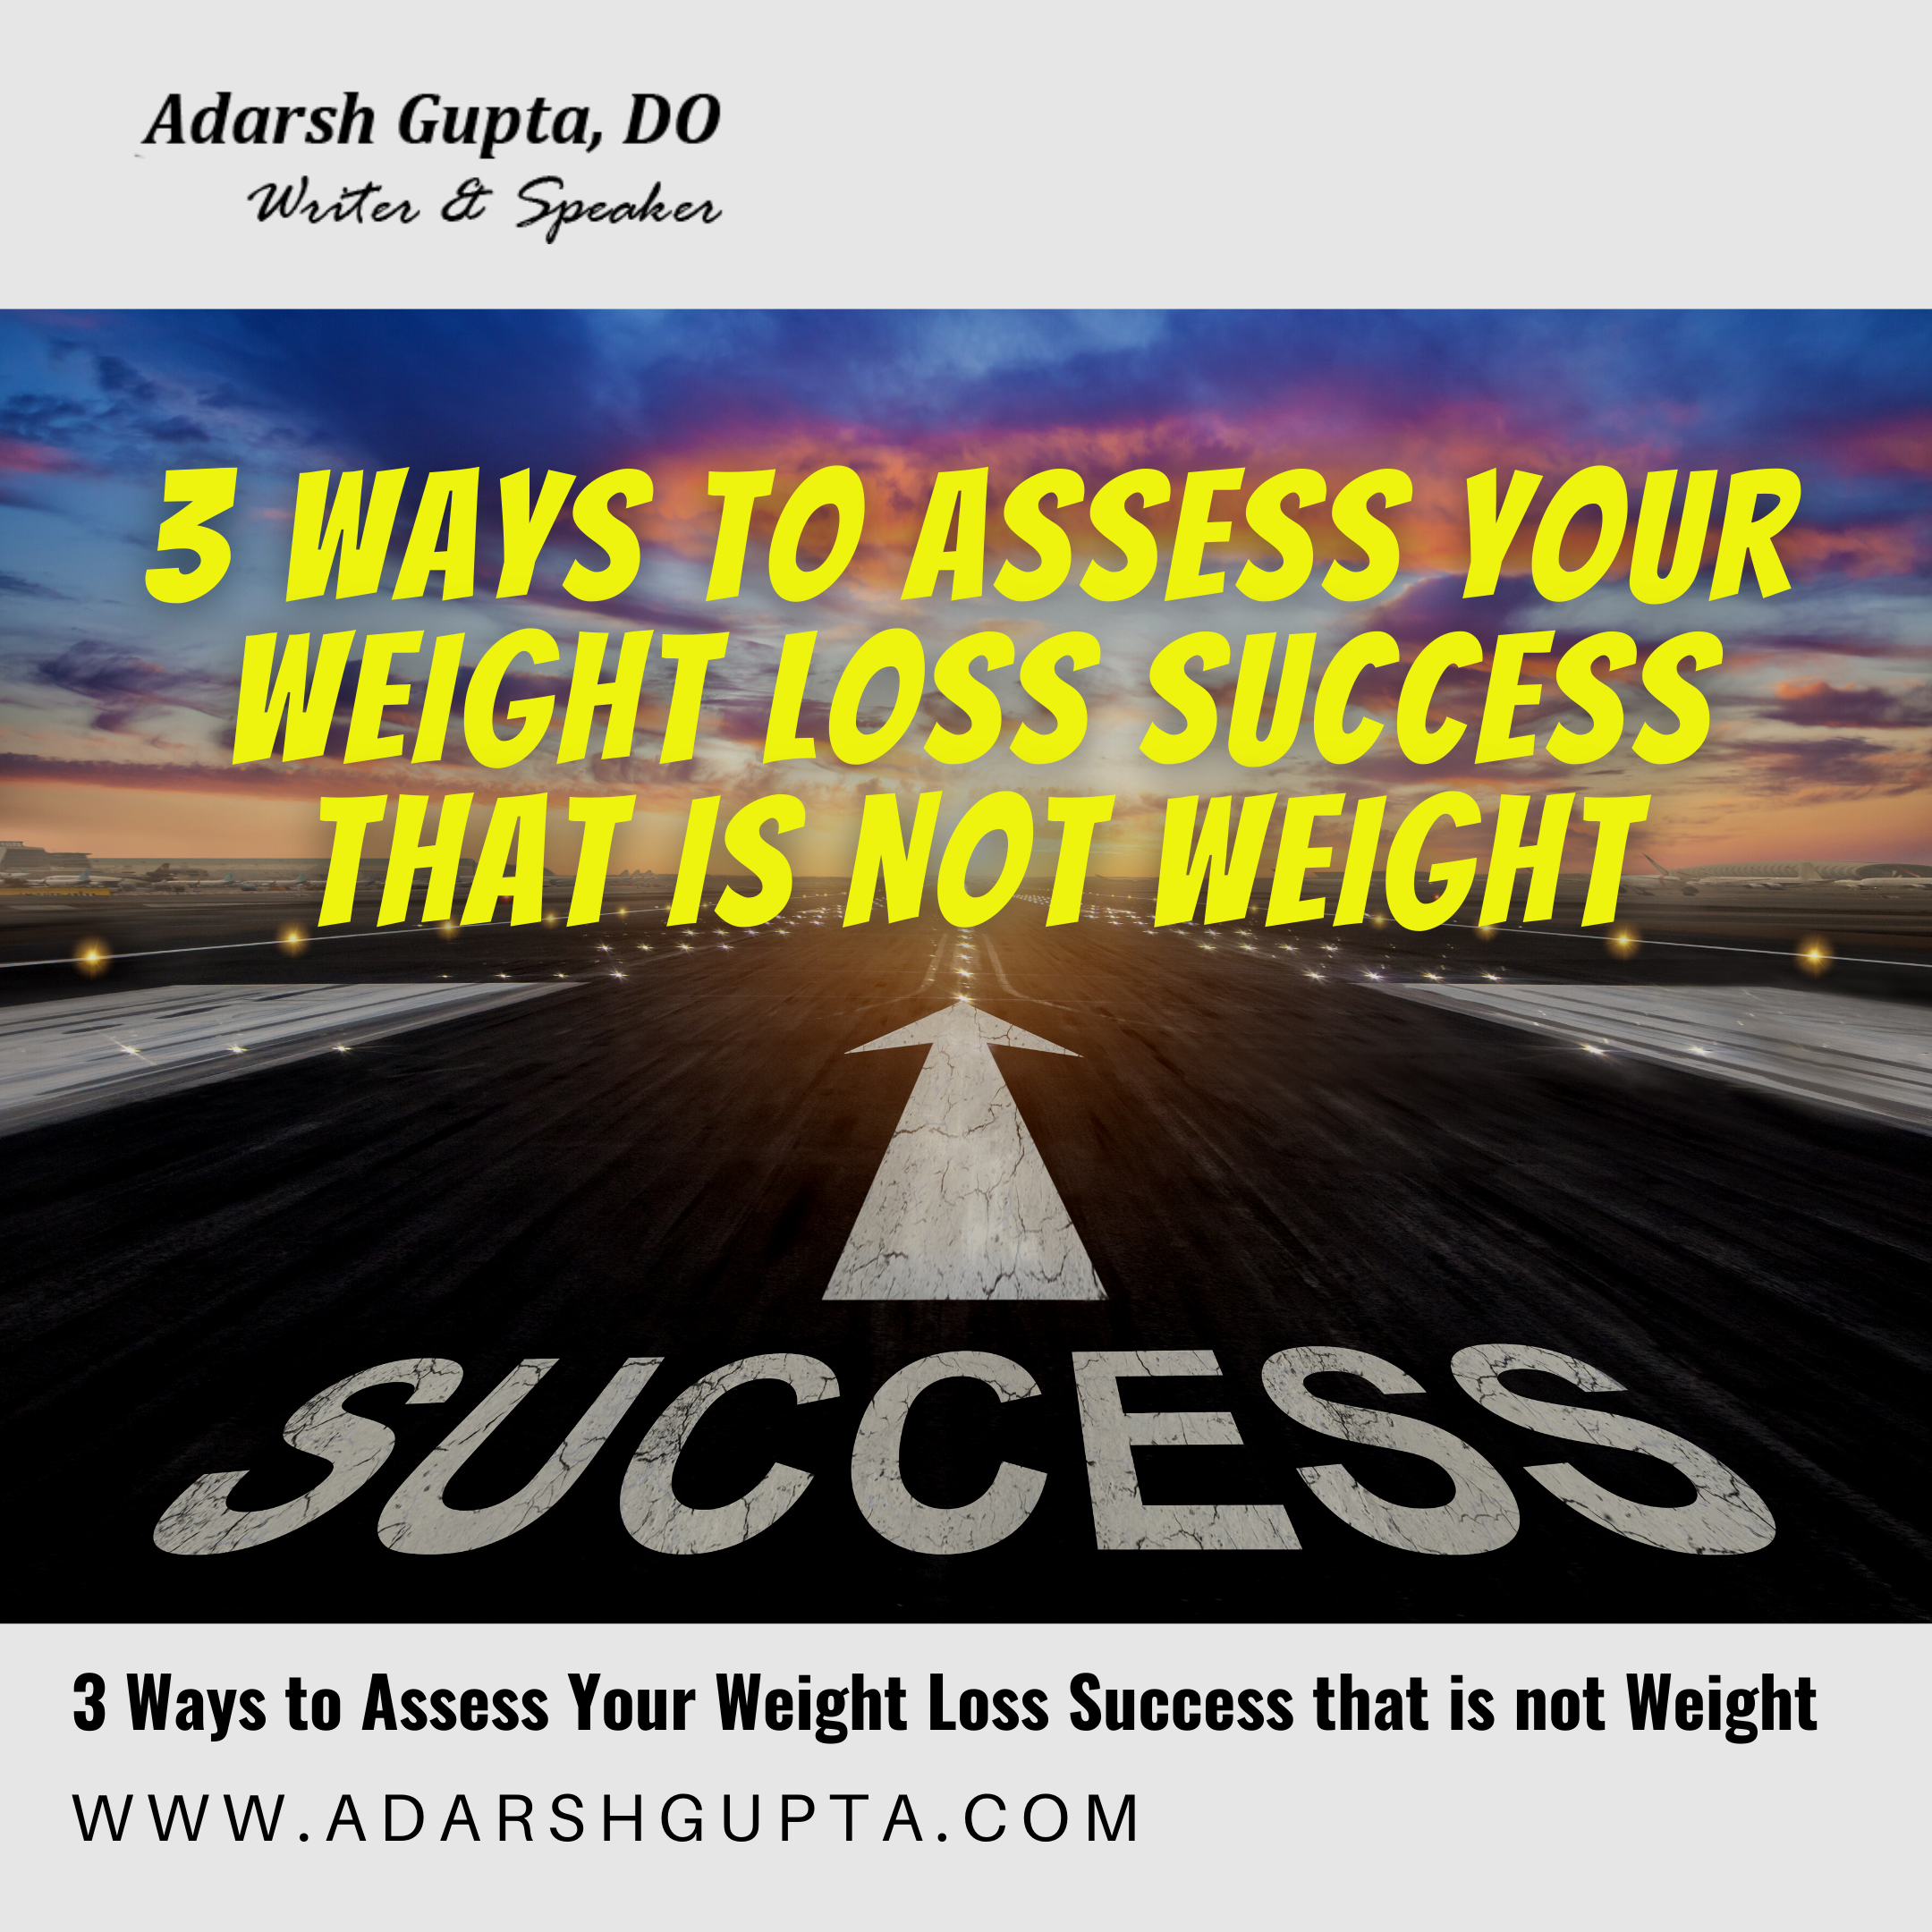 3 ways to measure your weight loss success that is not weight